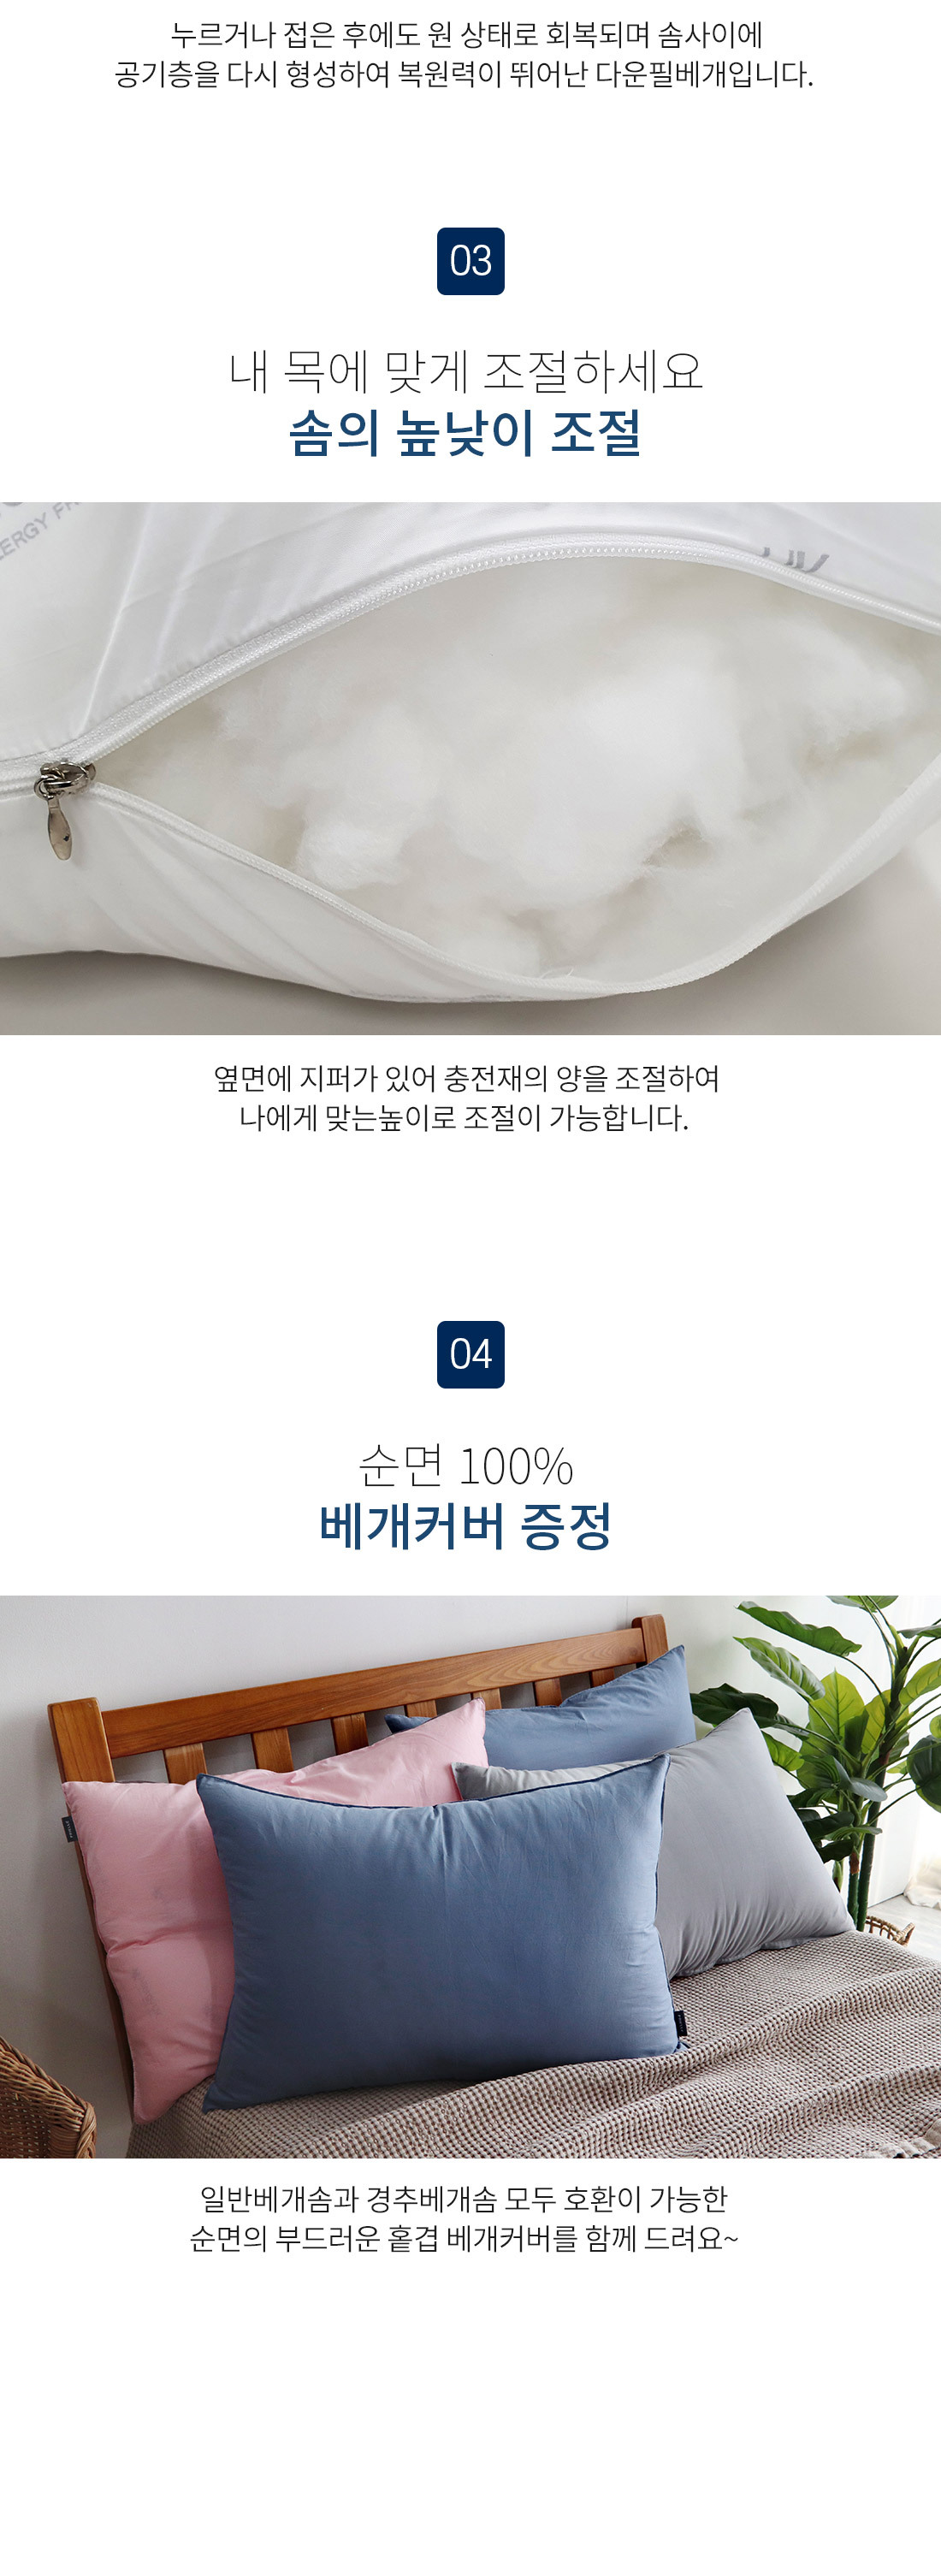 Downfill Goodsleep Pillow 08 Jpg